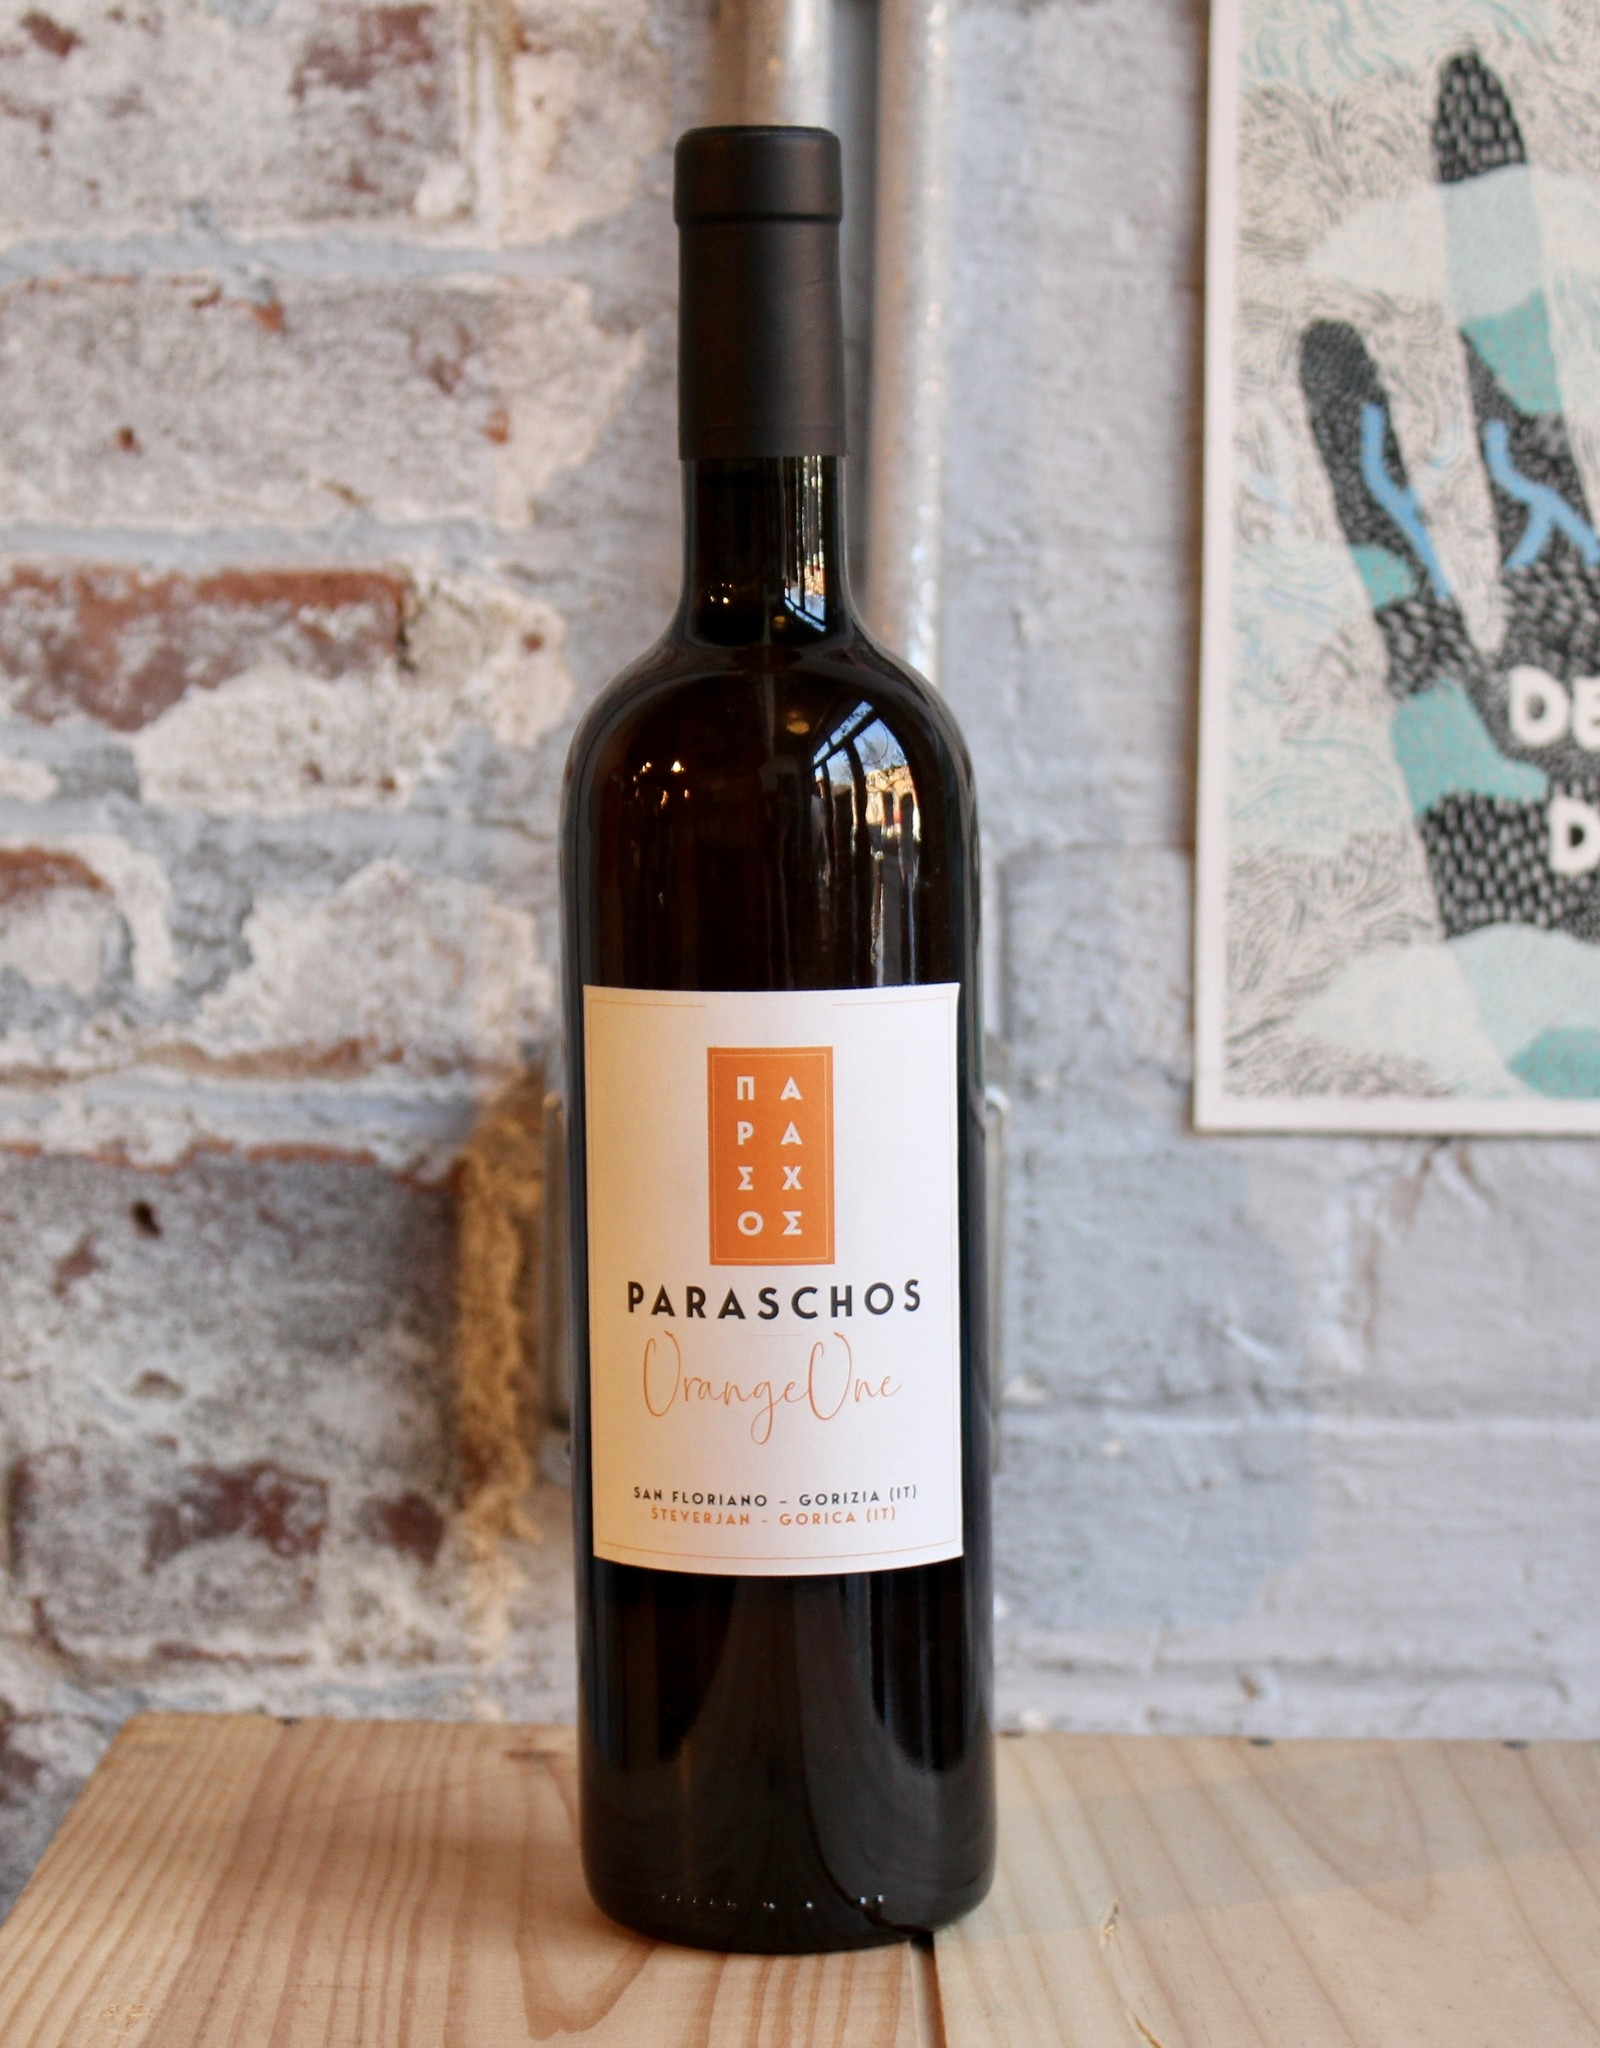 Wine 2017 Paraschos Orange One - Venezia Giulia, Italy (750ml)